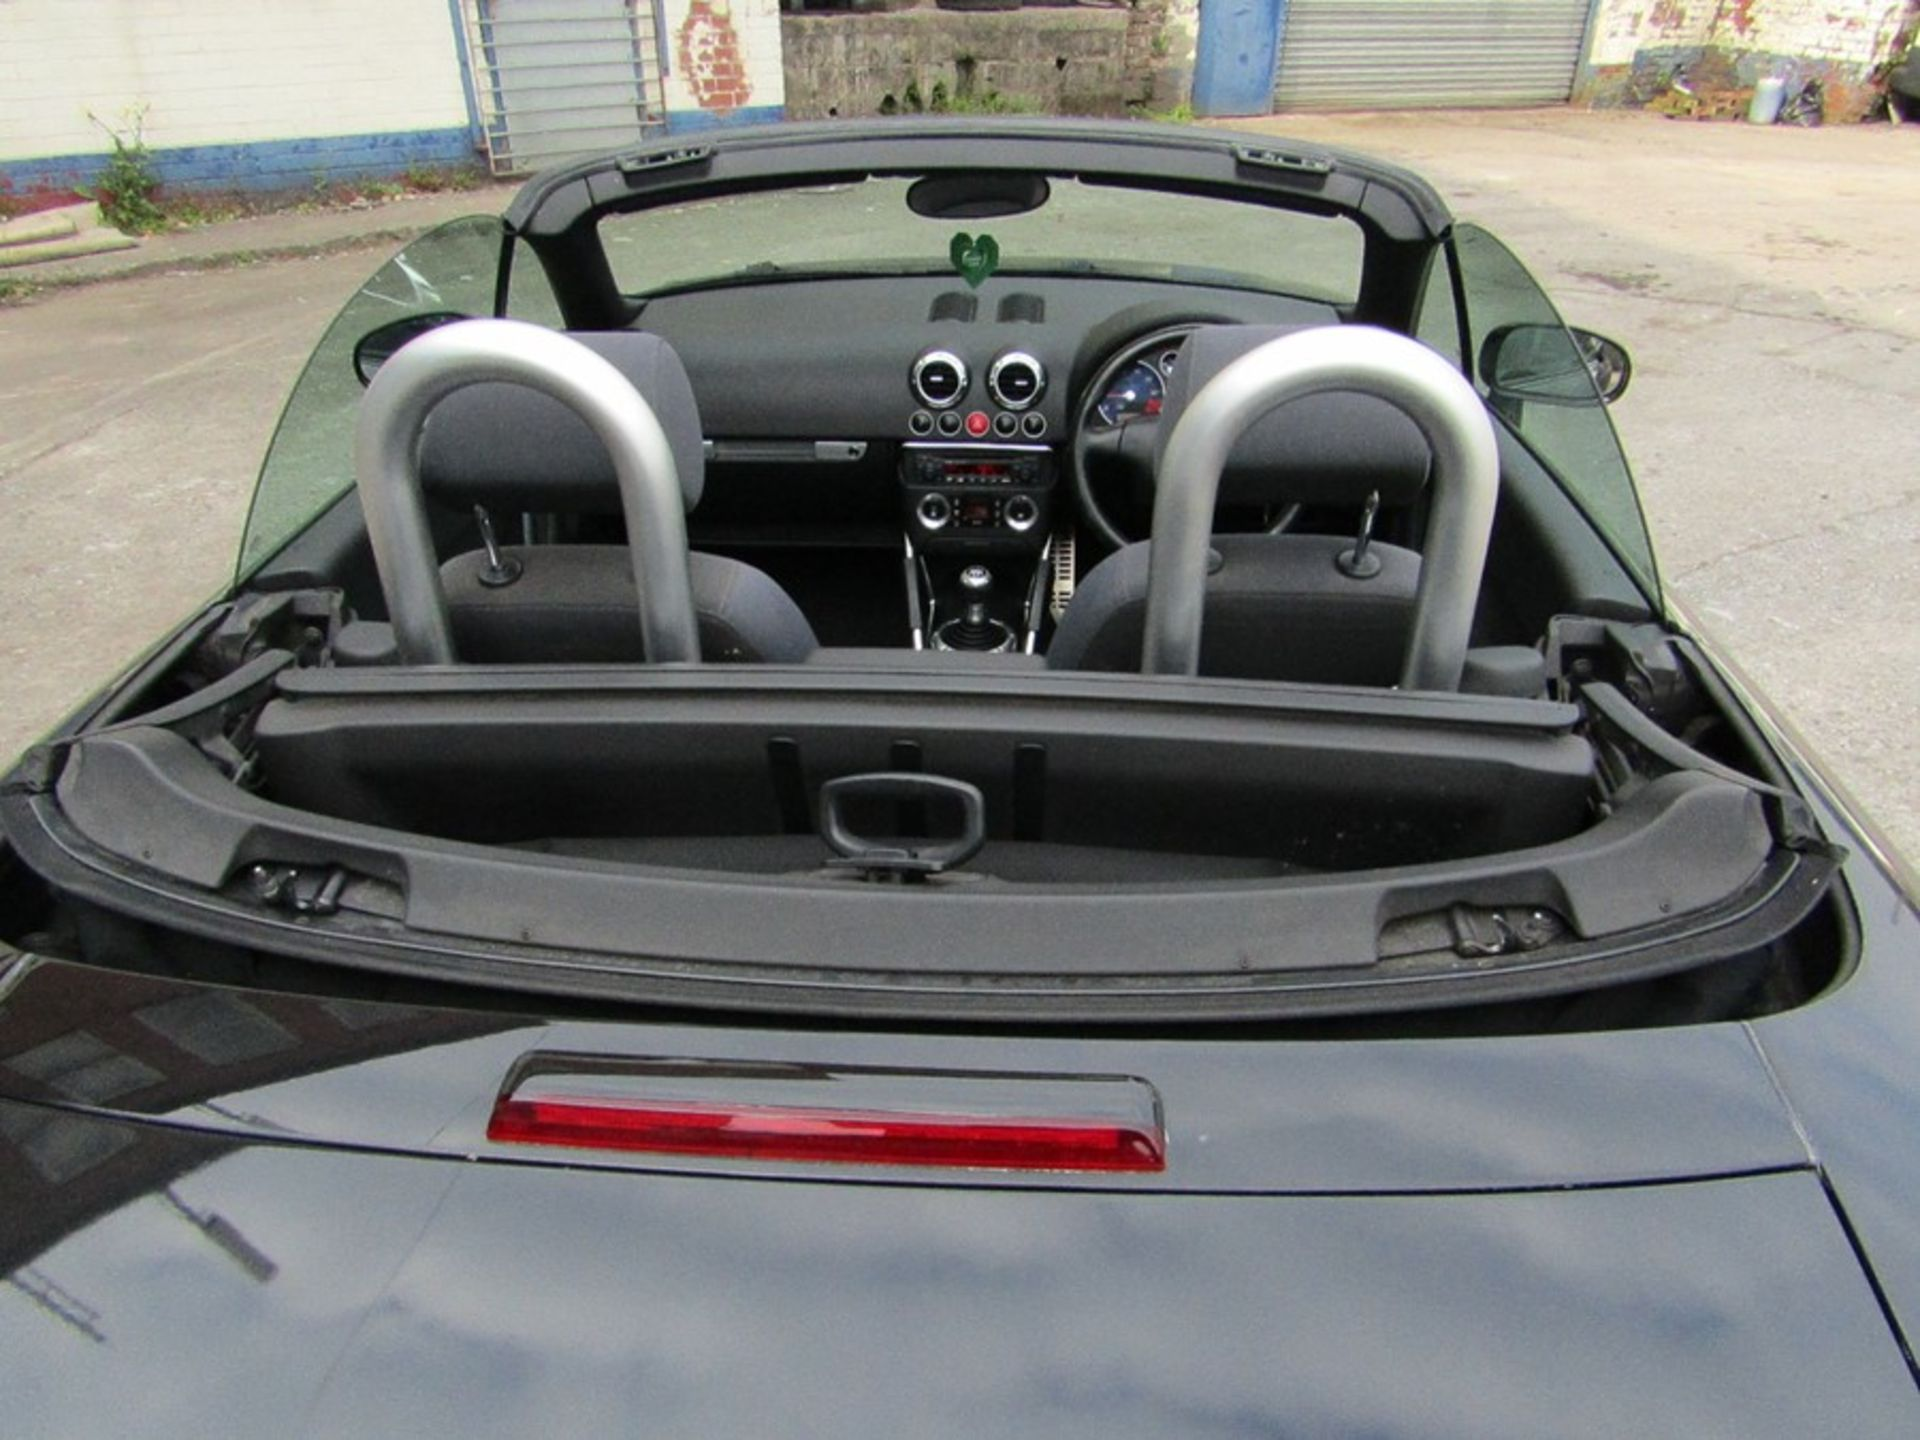 2005 Audi 1.8i Convertible roadster, 131,608 Miles (unchecked) MOT until 01/06/2021, Has part - Image 14 of 16